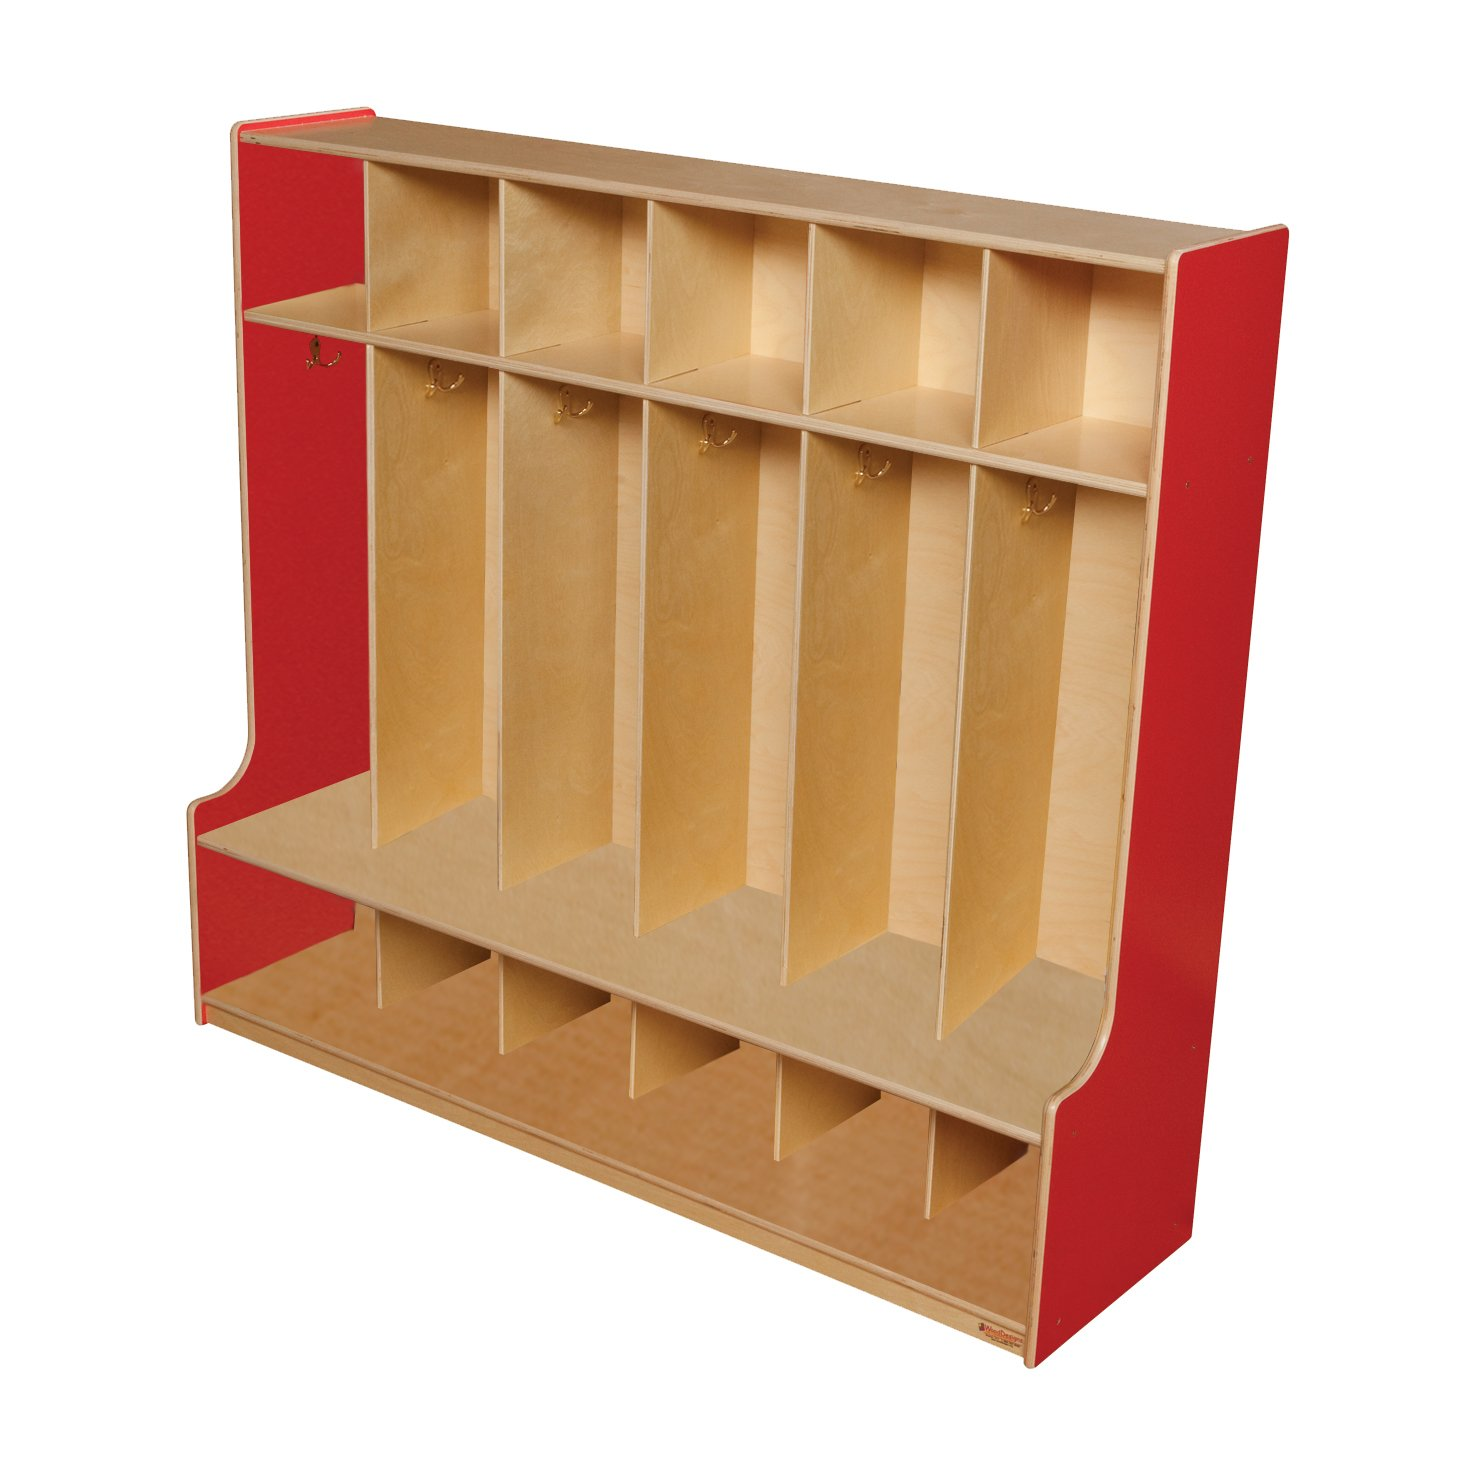 Wood Designs 51006R Strawberry Red 6 Section Seat Locker, 49'' Height, 18.5'' Width, 57'' Length